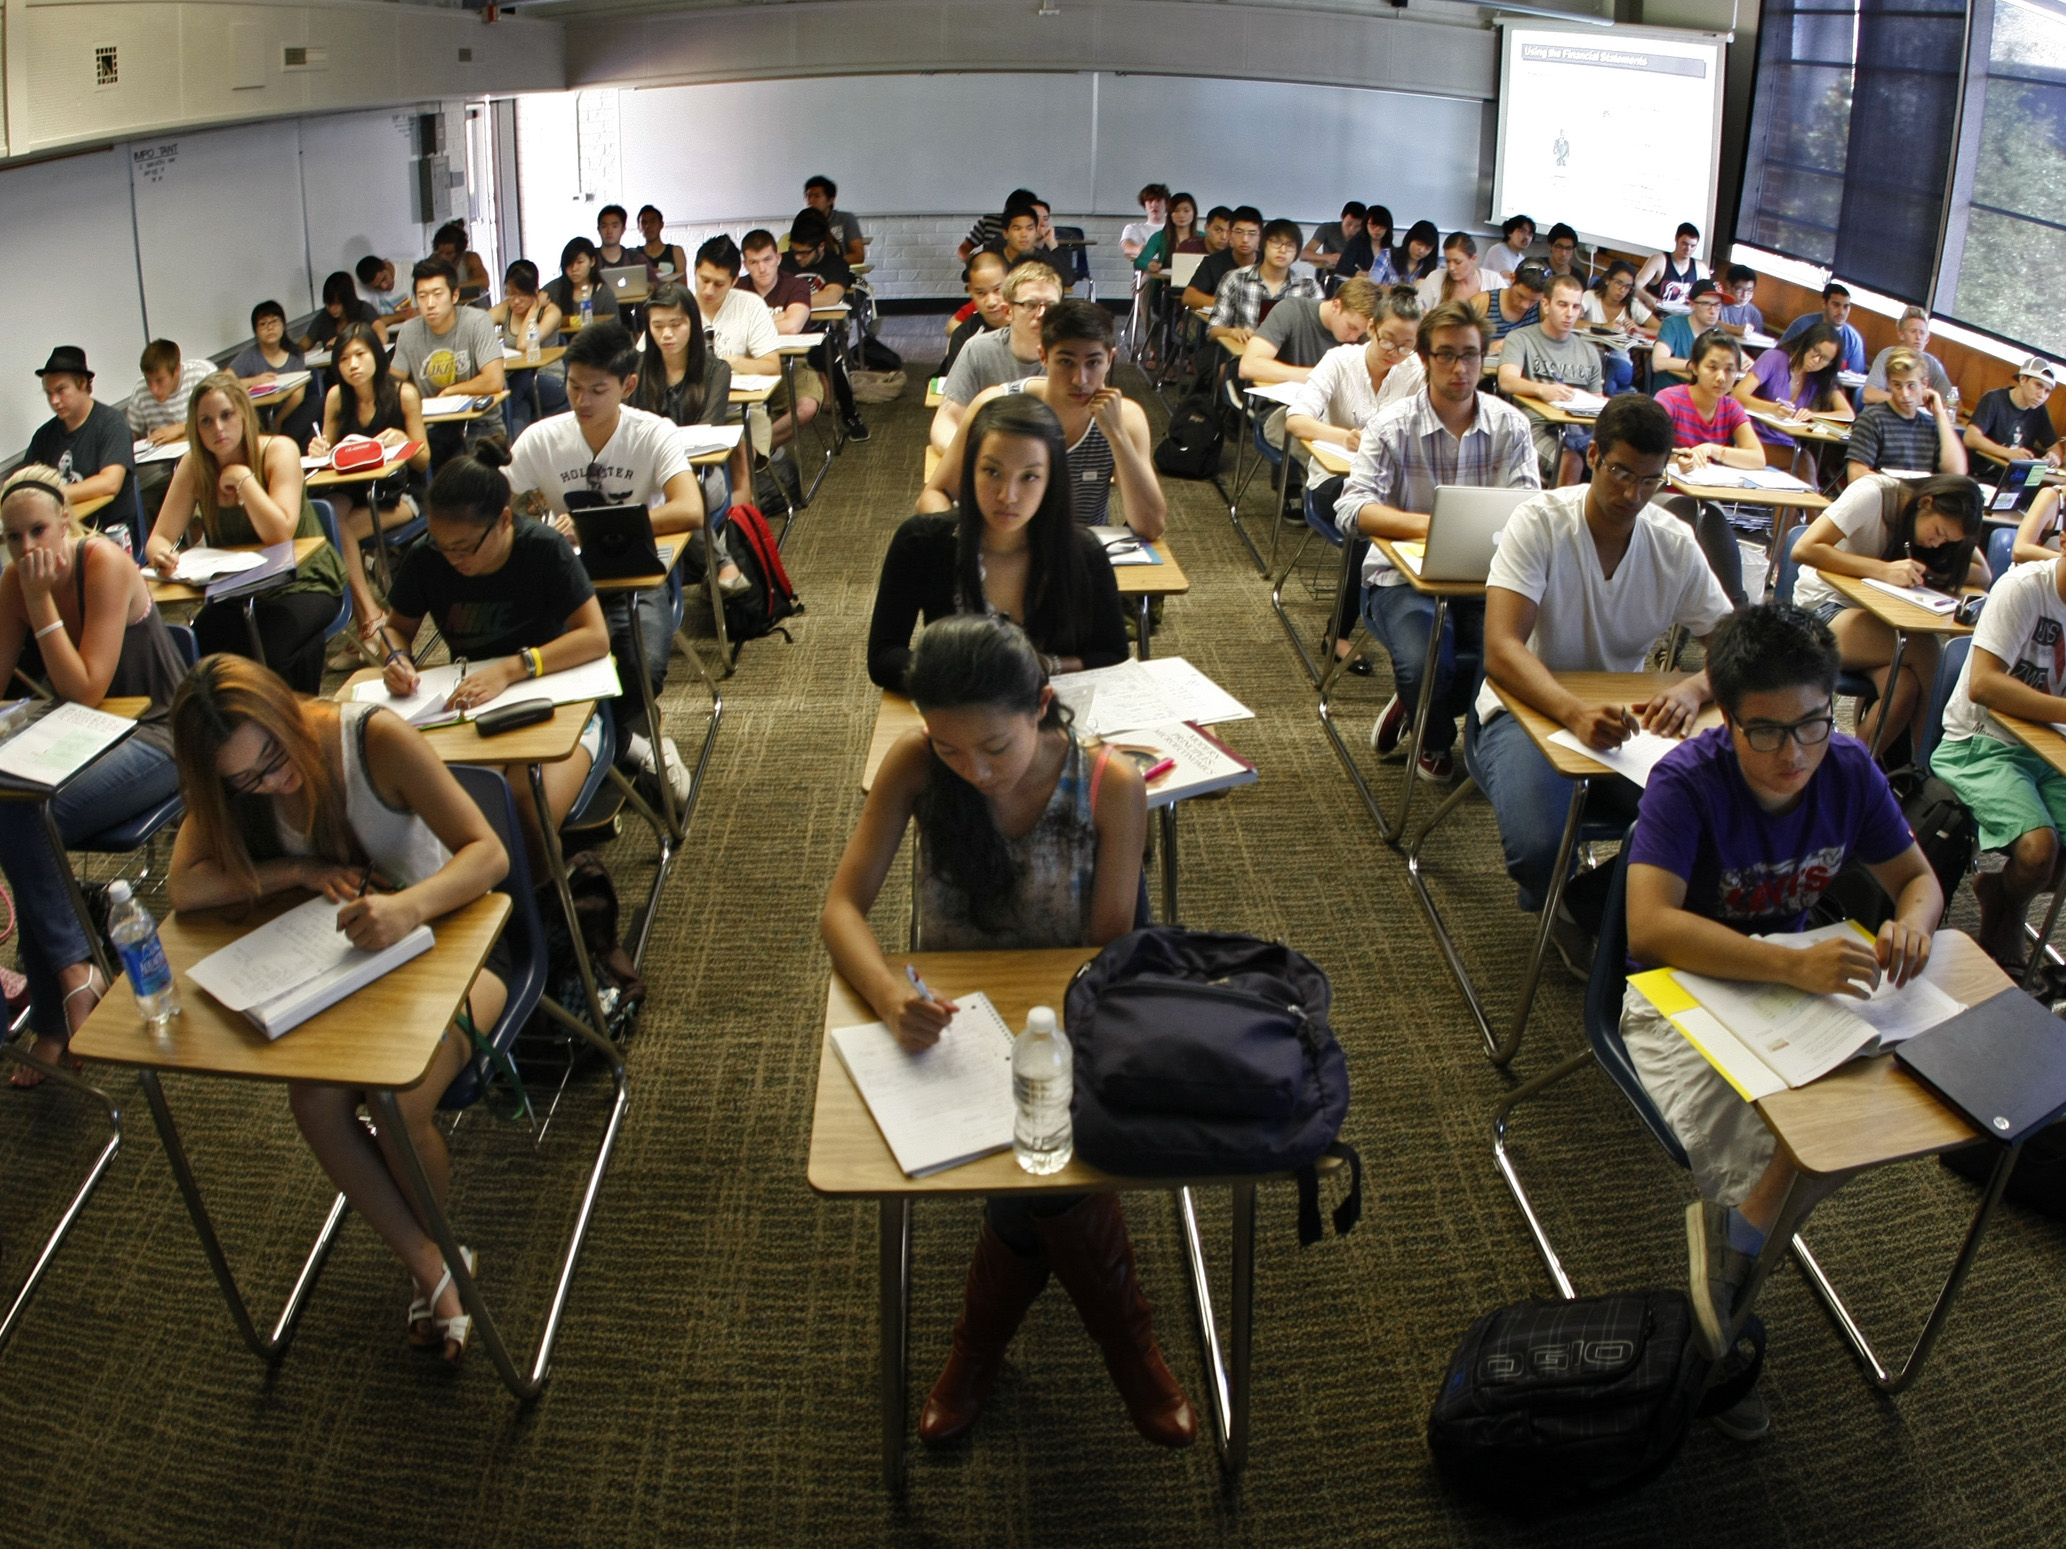 SEPTEMBER 10 2012. COSTA MESA, CA. Every desk is taken in professor Jeanne (cq) Neil's Accounting 10